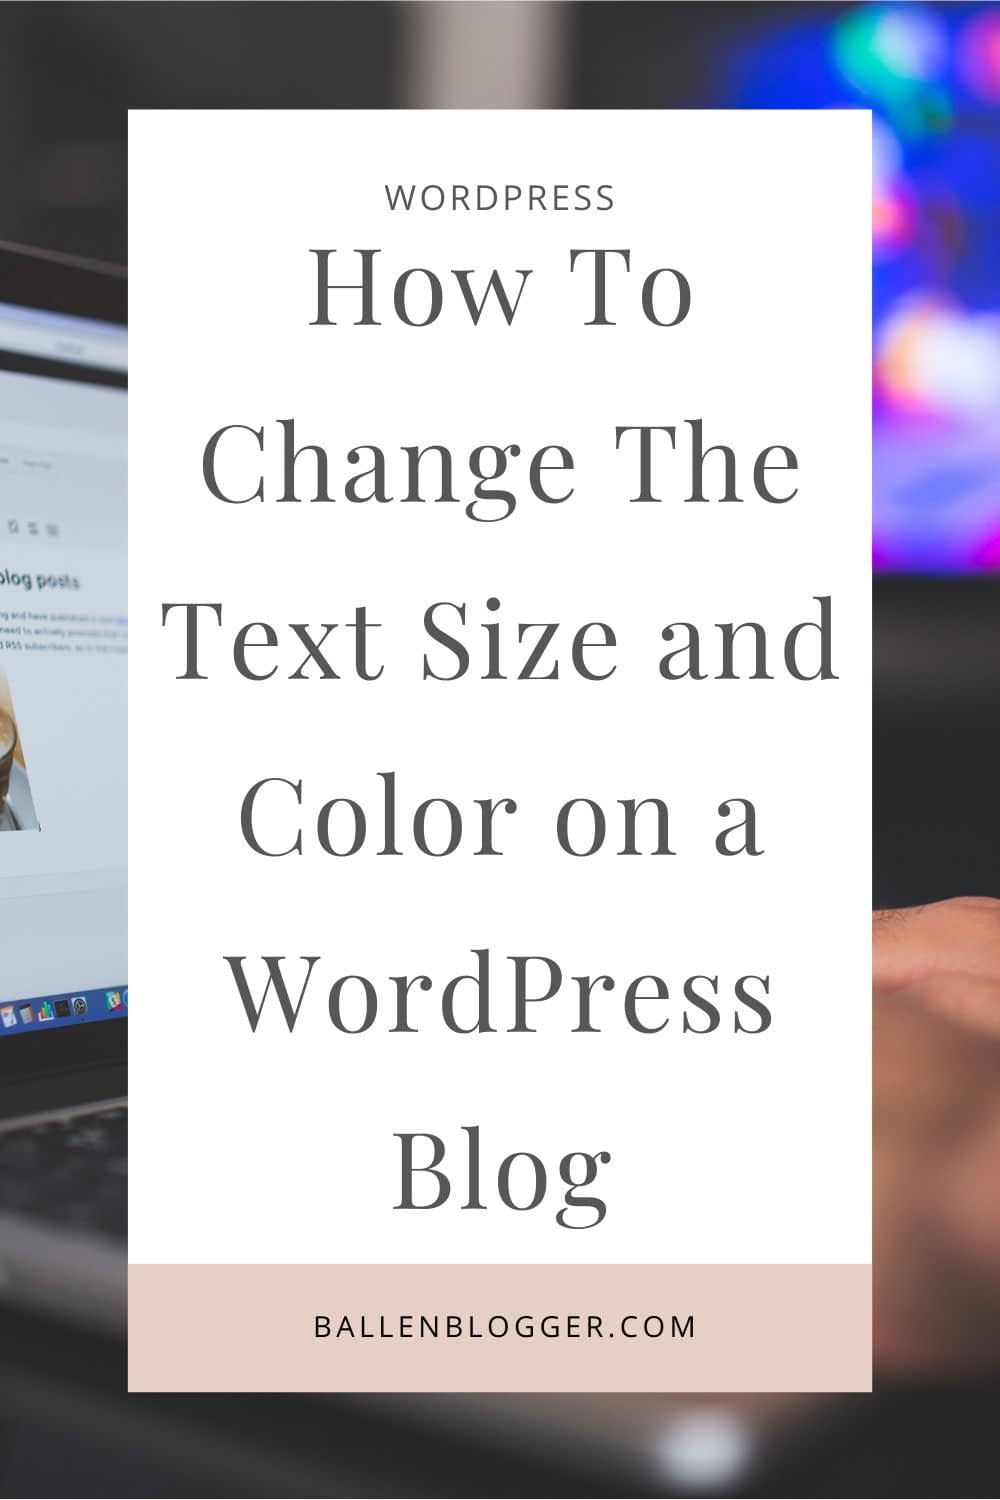 Many bloggers ask how to change the text size and text color on a WordPress Blog or Website. This article will show you how to change text size and color right within the blog post.